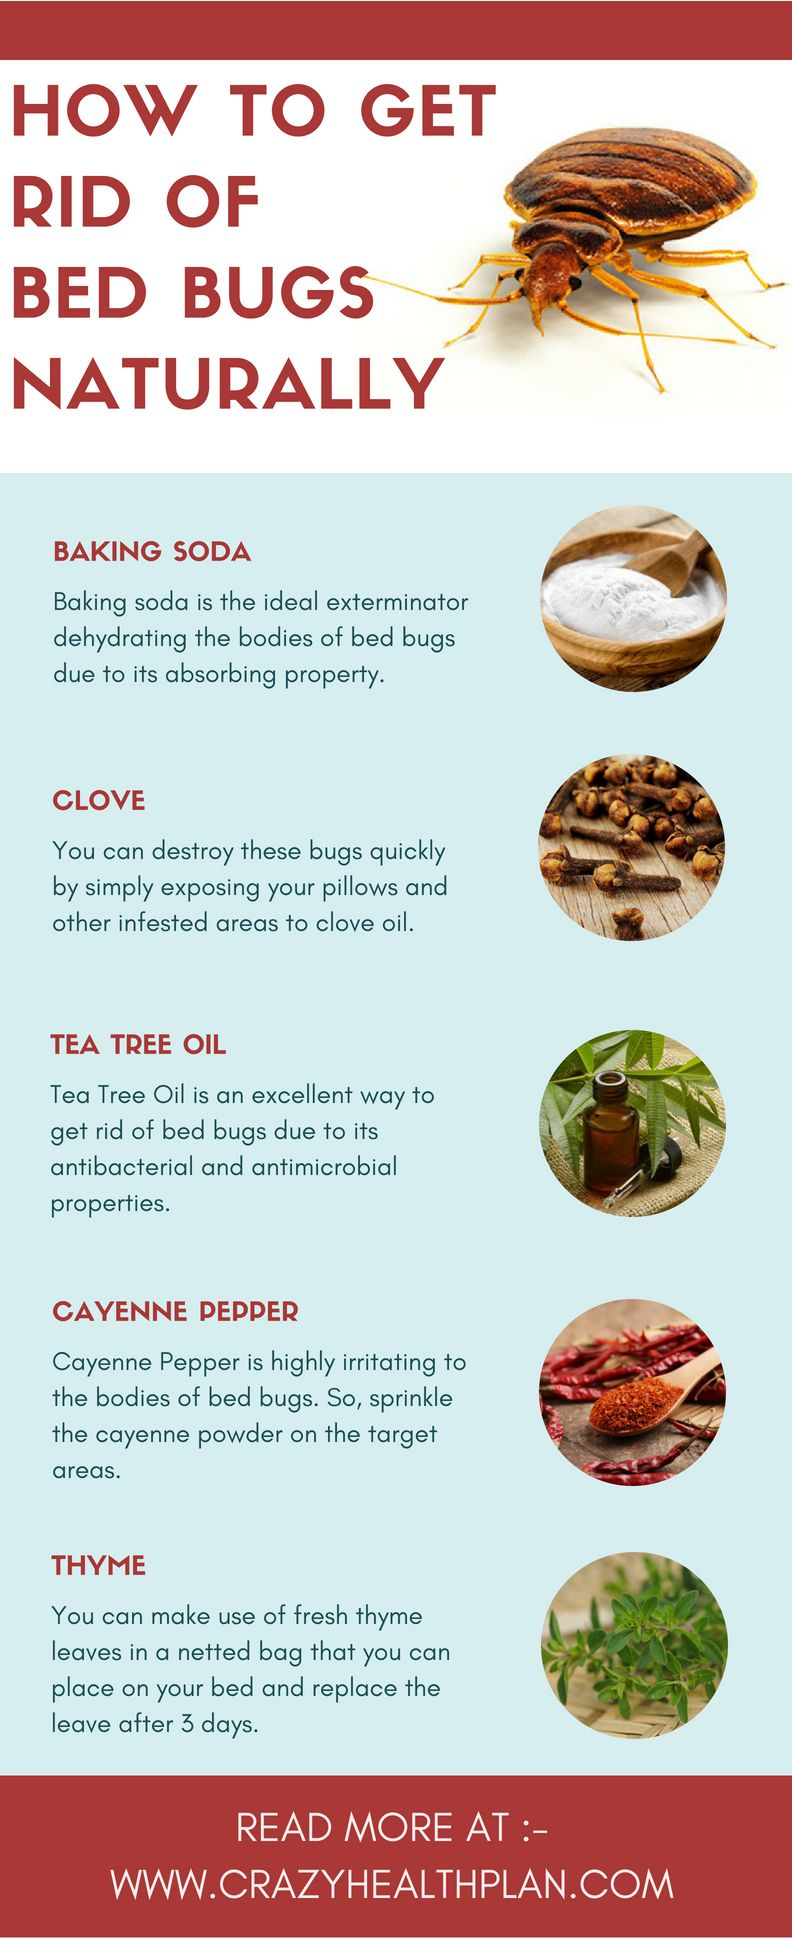 Pin By Zavida Begum On Natural Cures Rid Of Bed Bugs Bed Bug Bites Bed Bugs